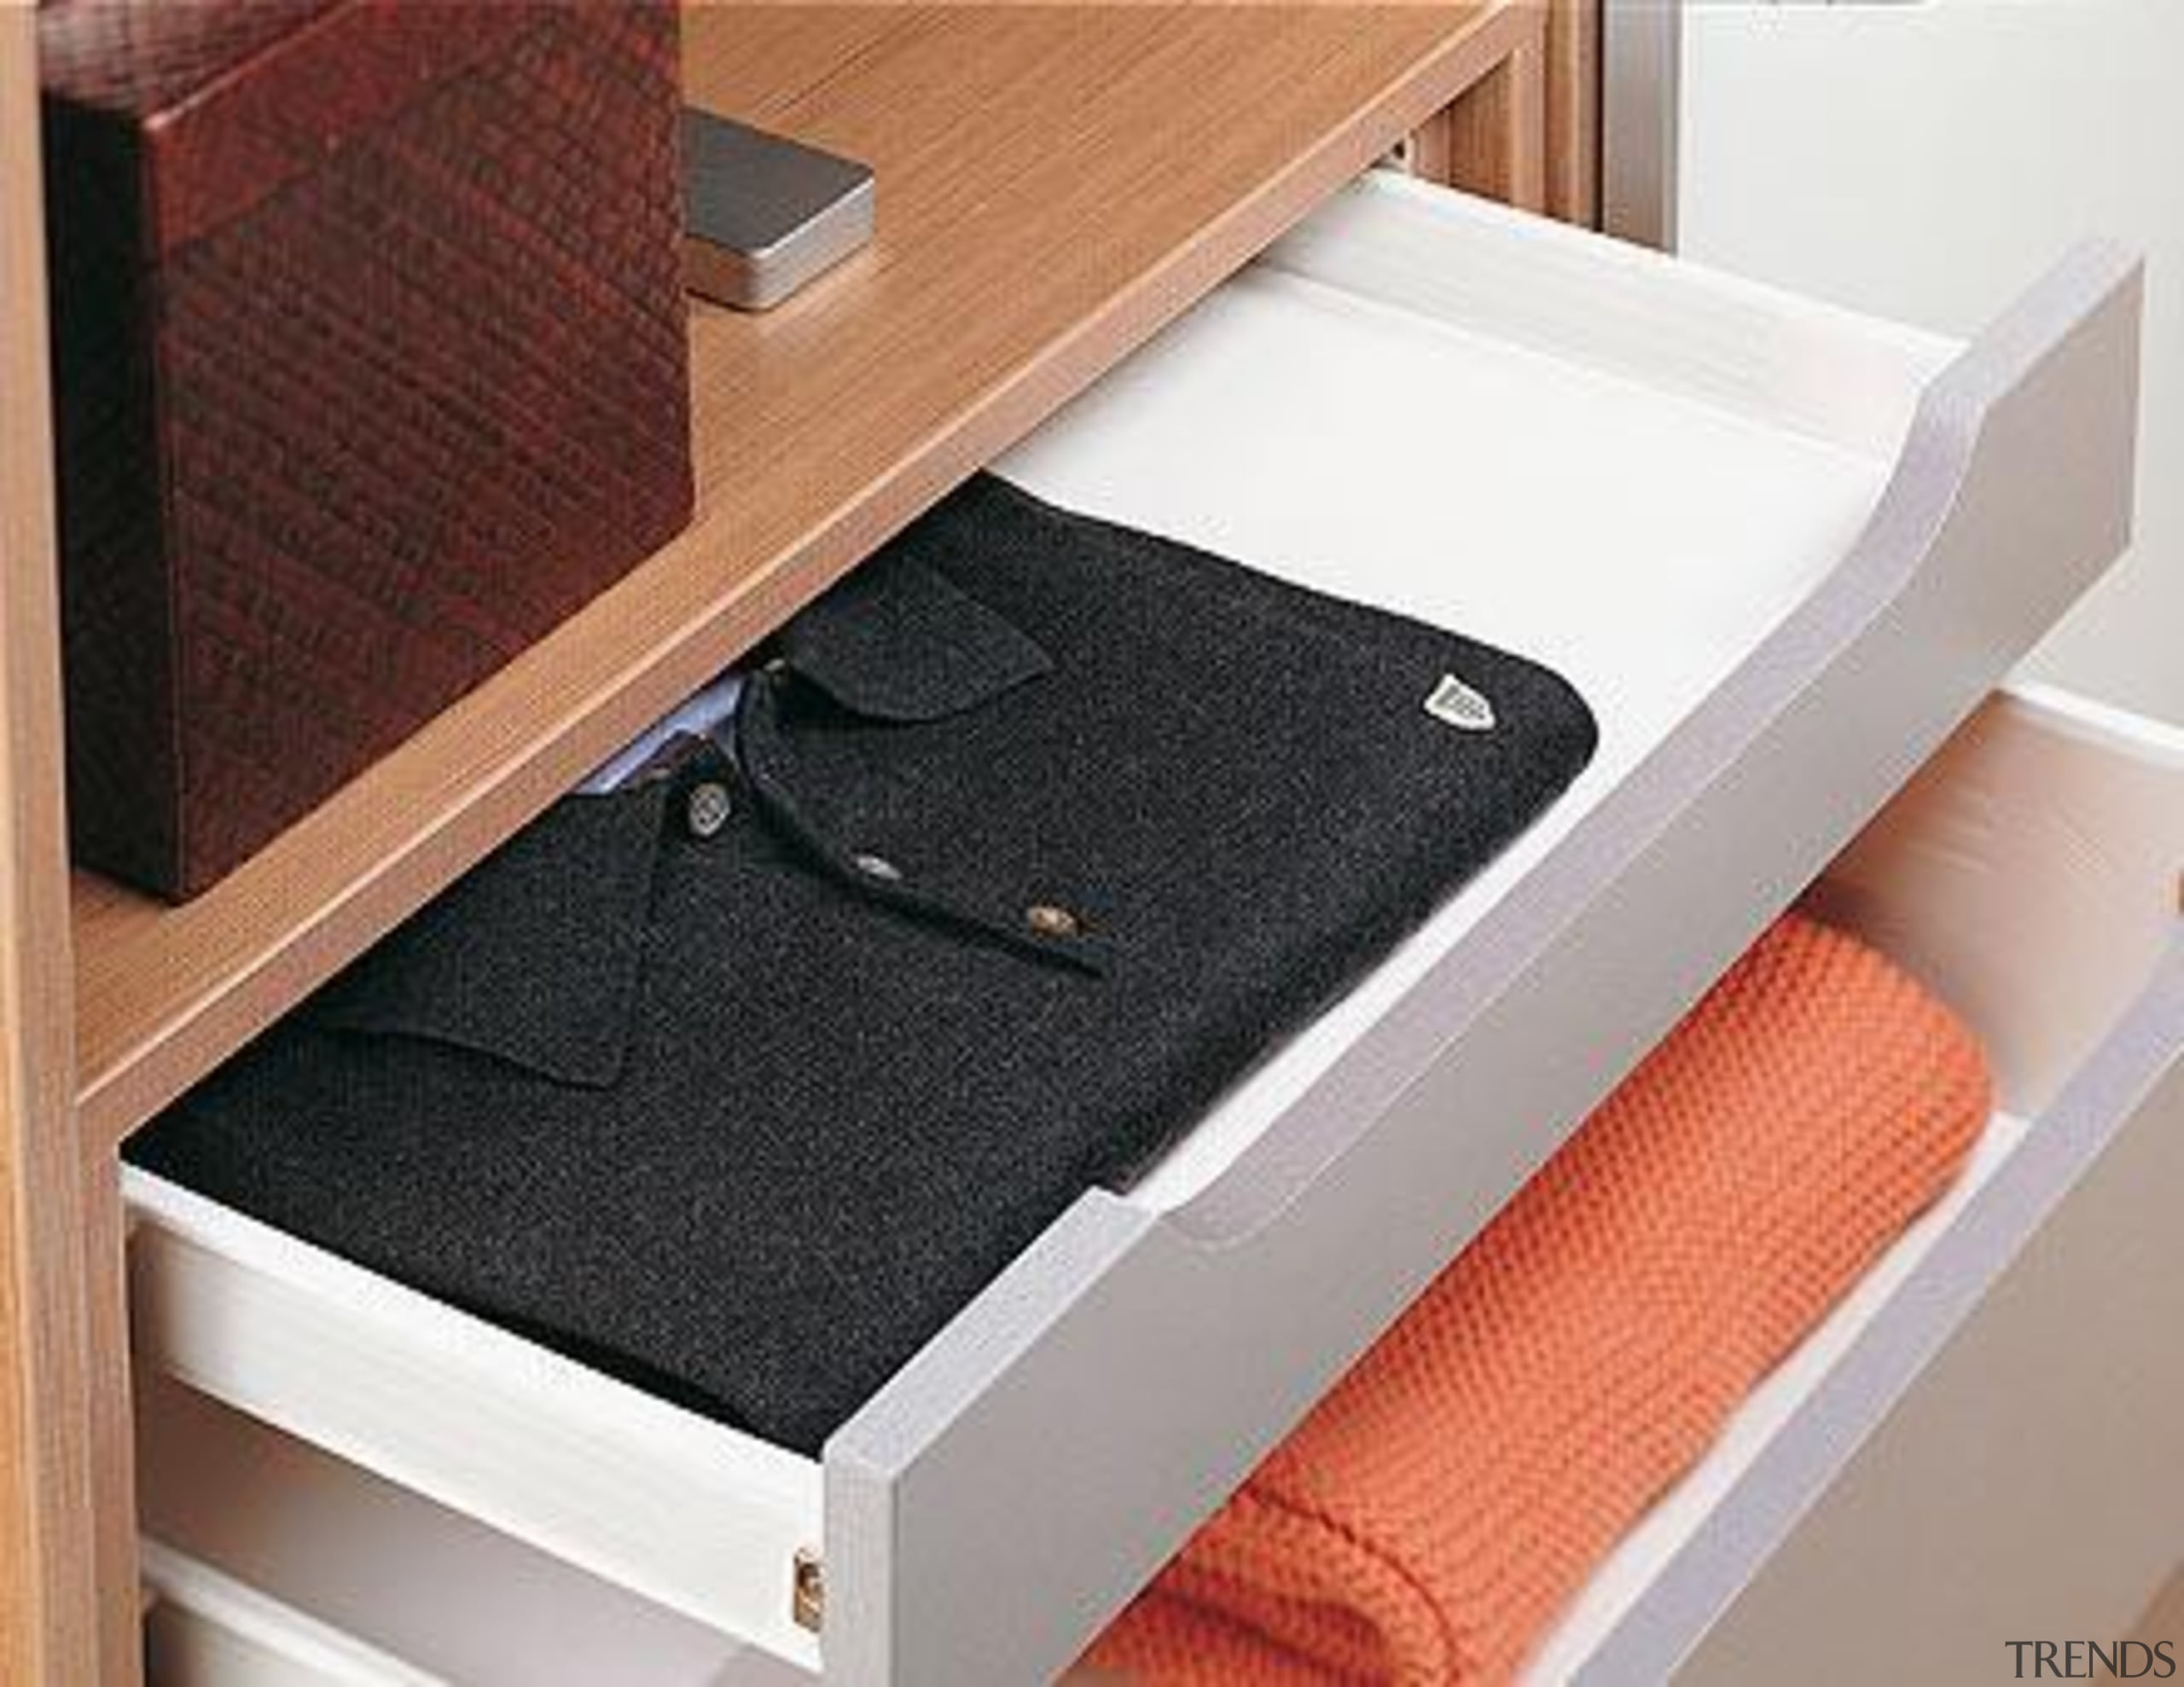 MultiTech steel drawer system for bedrooms and living-rooms. box, drawer, floor, furniture, product, product design, sink, gray